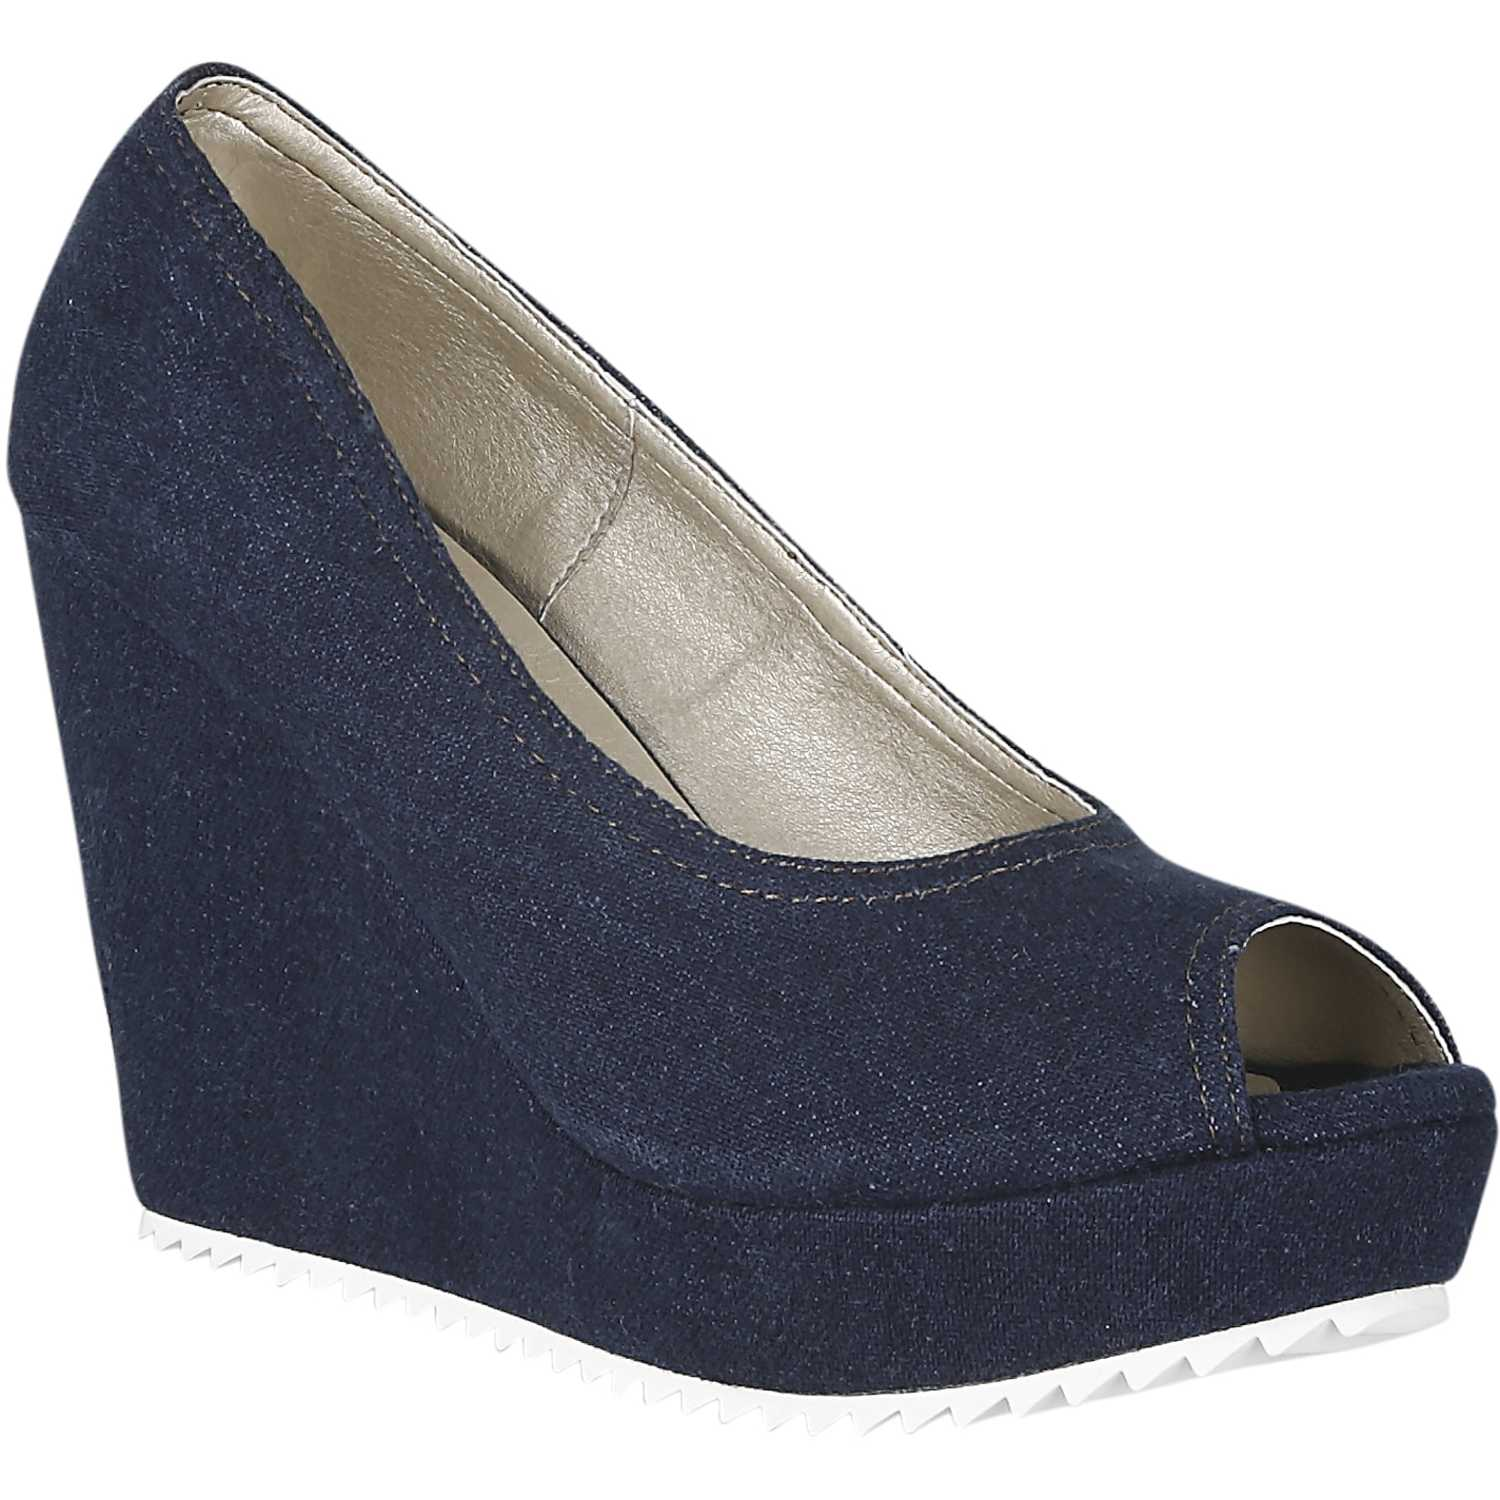 Platanitos cpw amy8 Azul Estiletos y Pumps